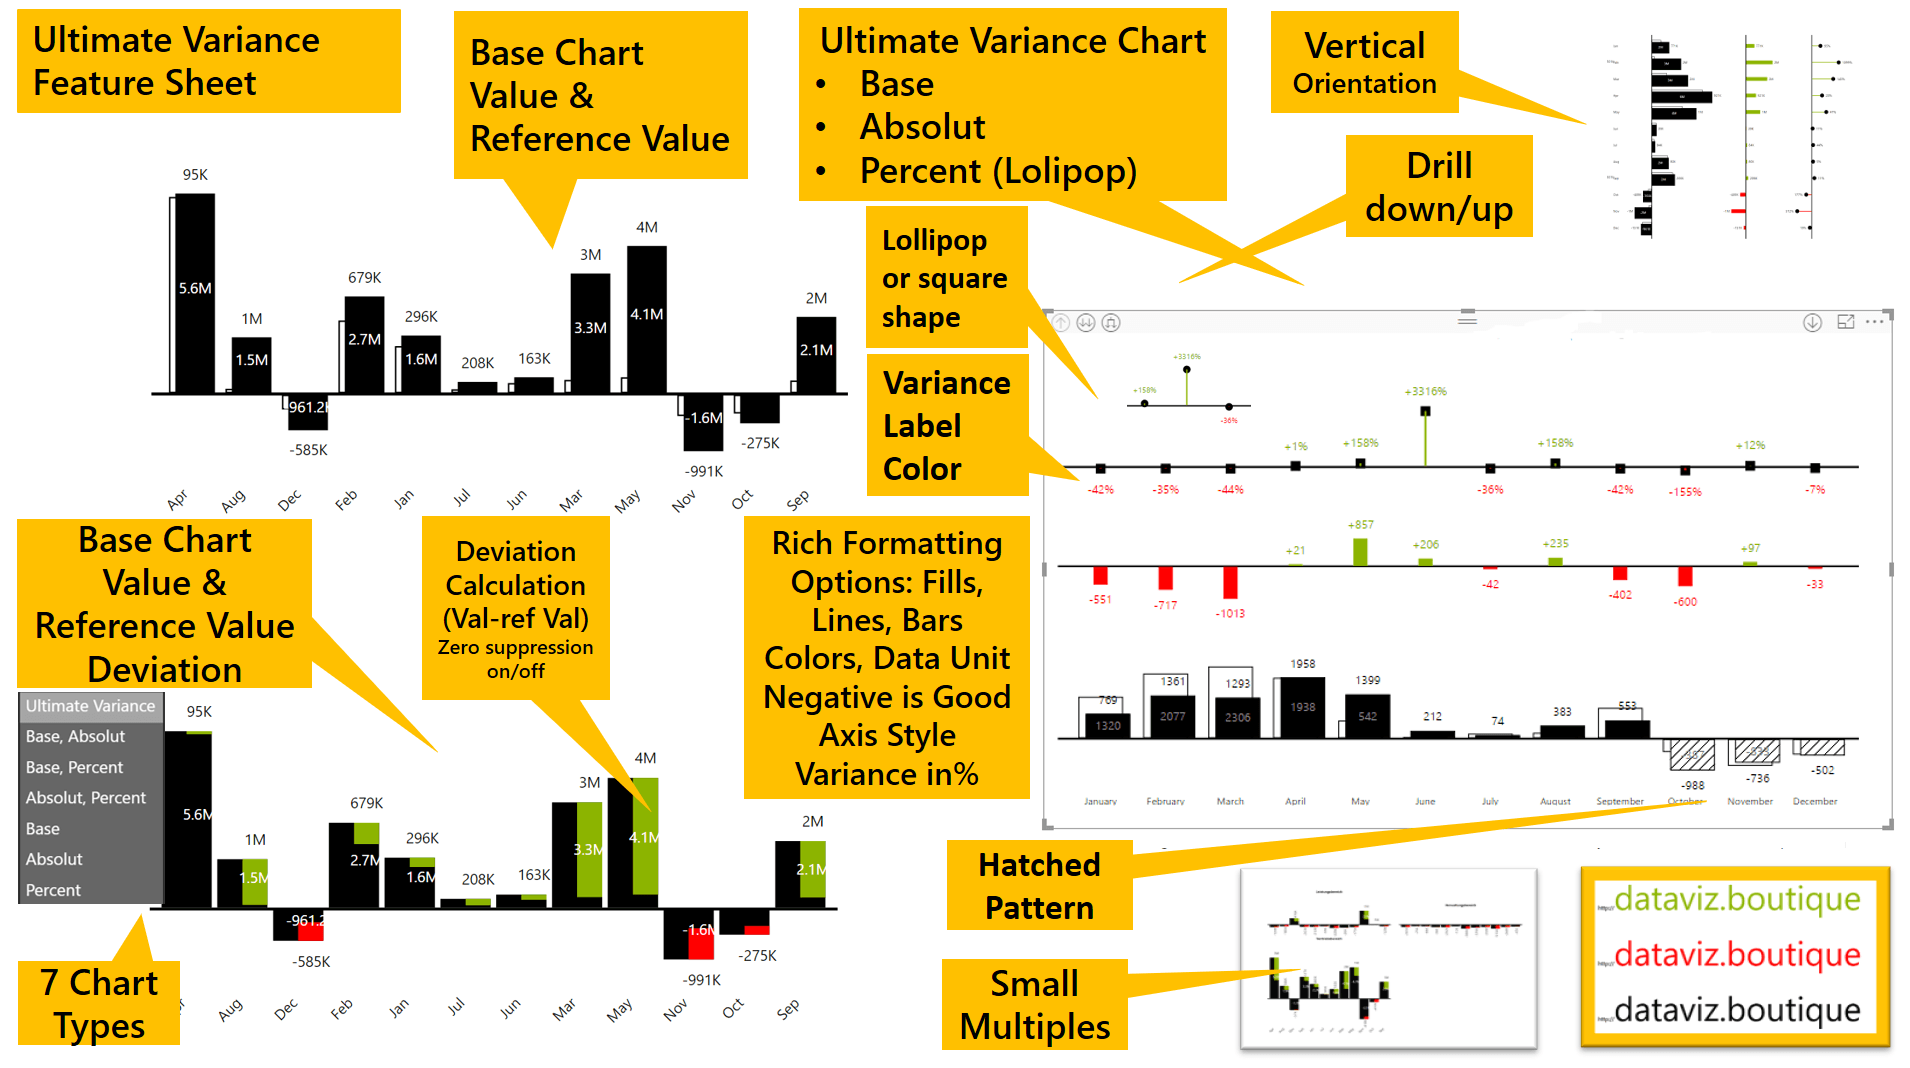 Power BI Ultimate Variance Chart Custom Visual - IBCS (R) - dataviz